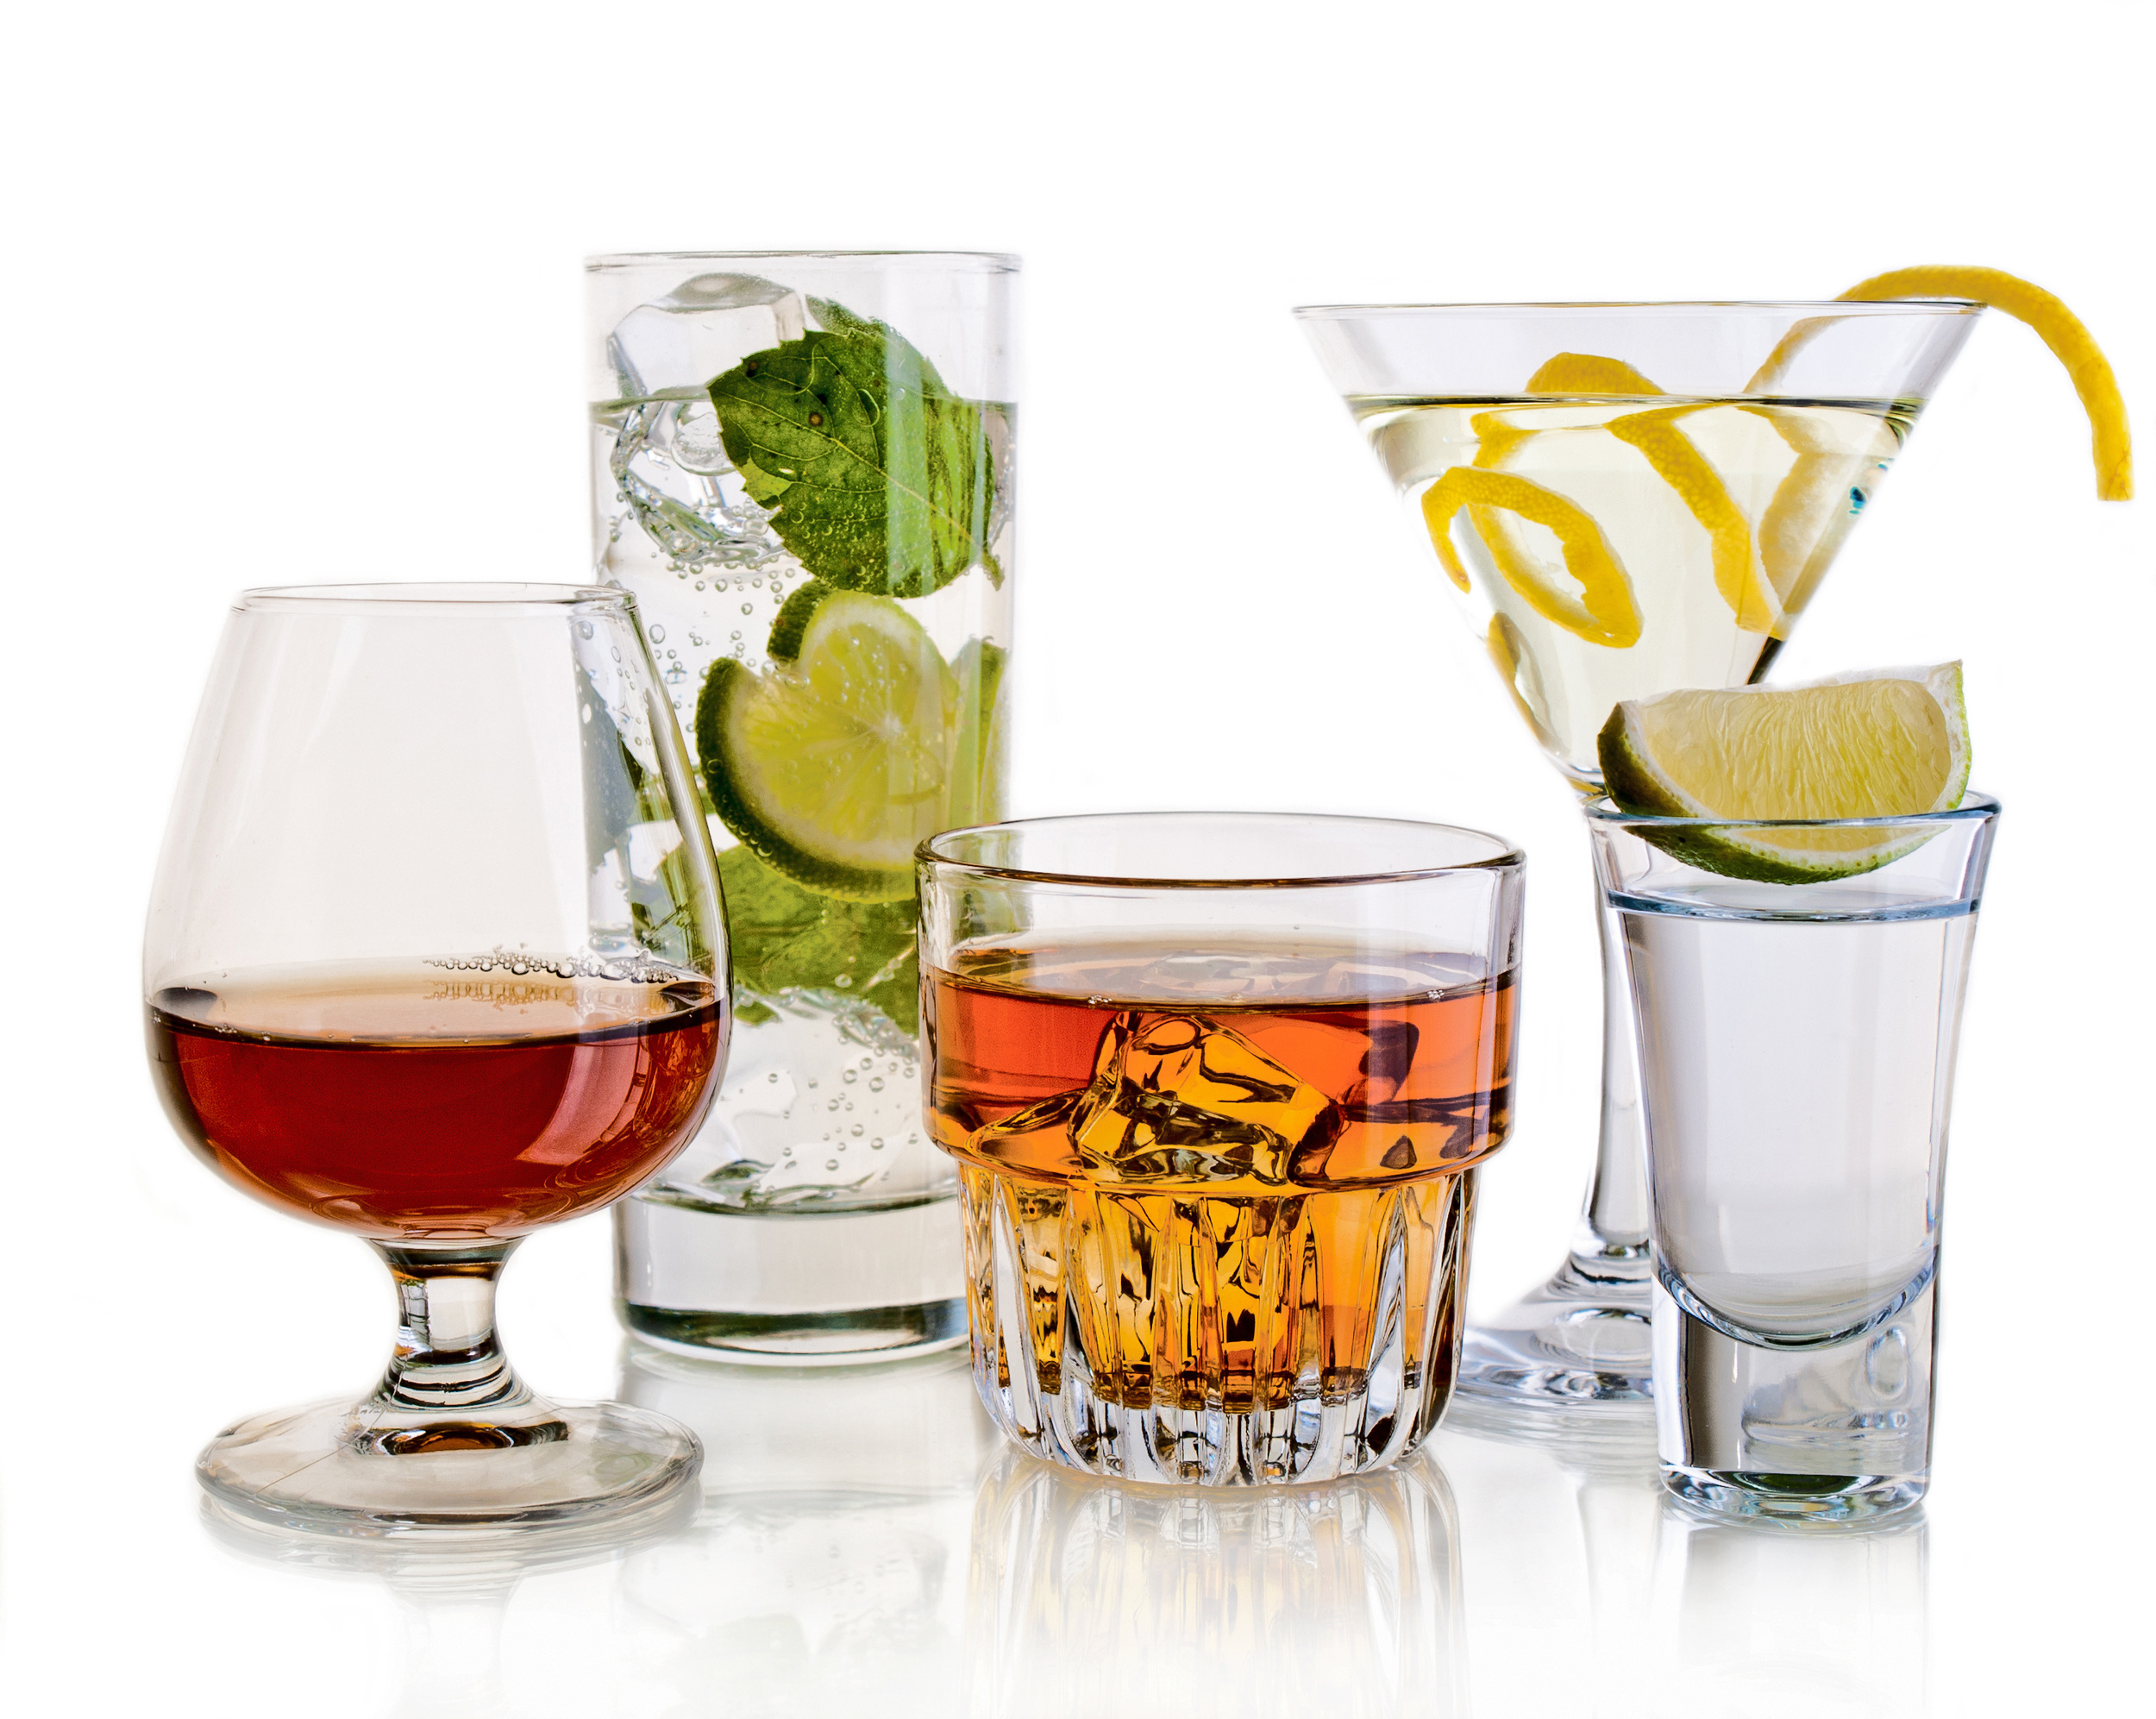 alcohol problems and stress can be a big problem